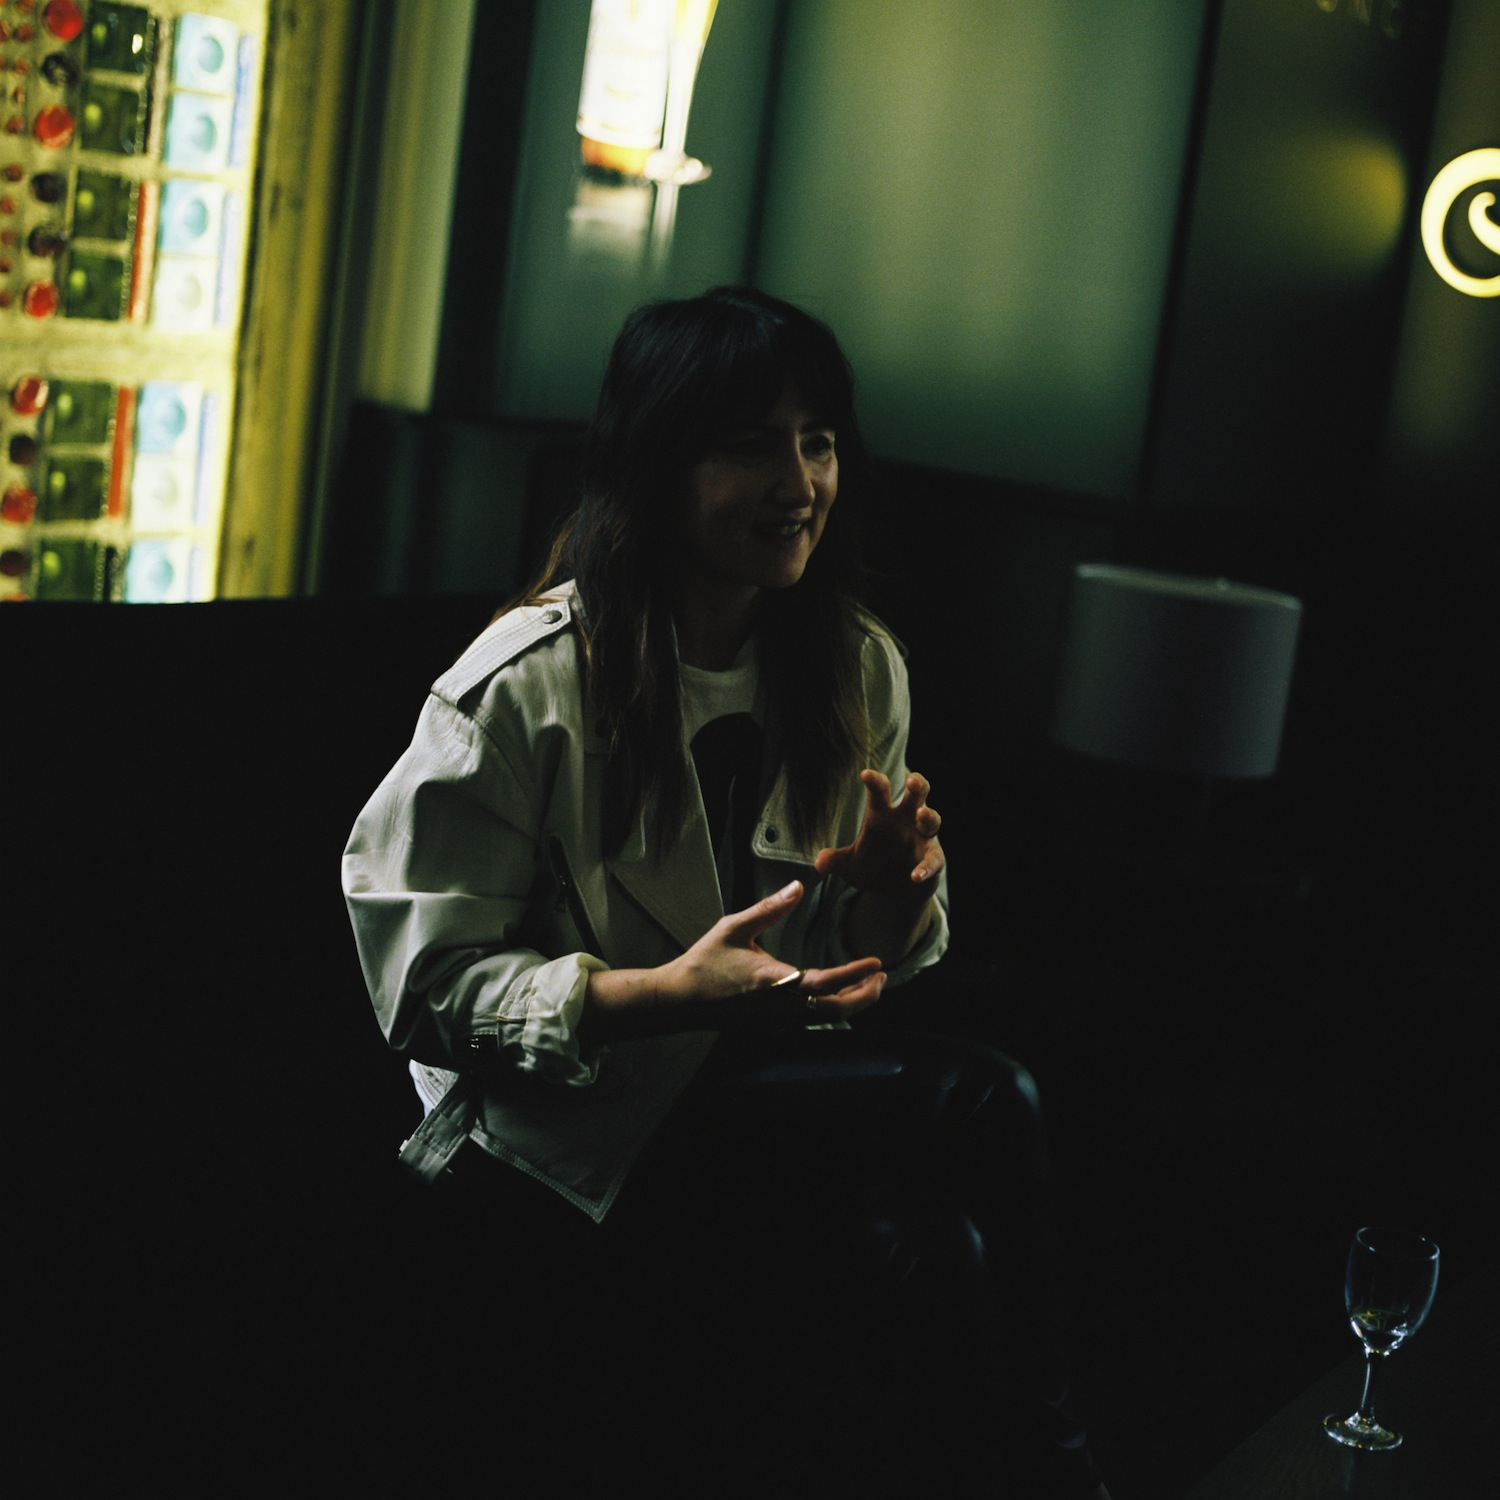 KT Tunstall before her gig in Berlin